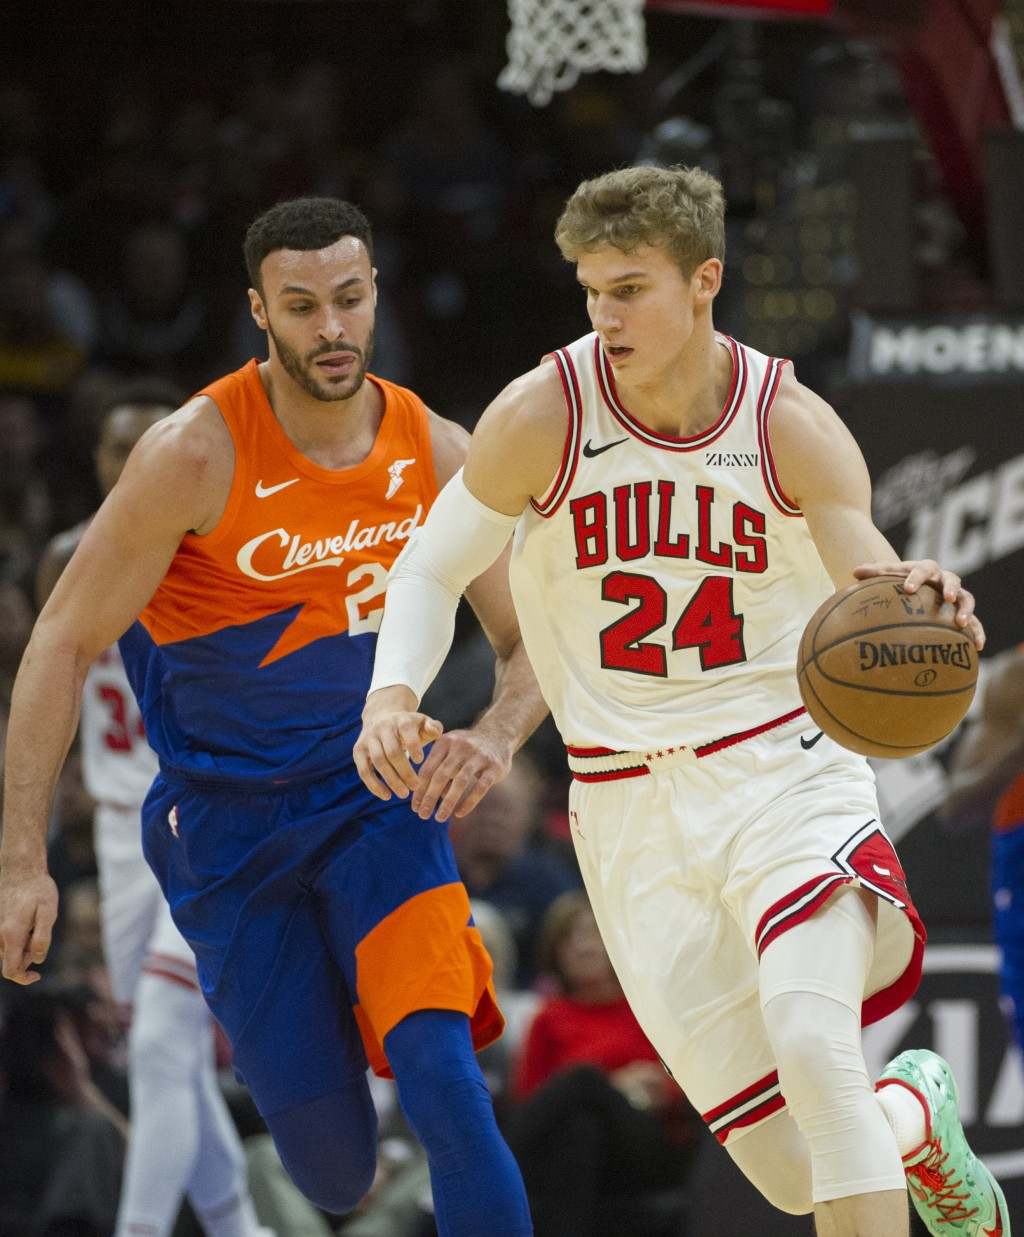 Chicago Bulls' Lauri Markkanen (24) drives around Cleveland Cavaliers' Larry Nance Jr. (22) during the first half of an NBA basketball game in Clevela